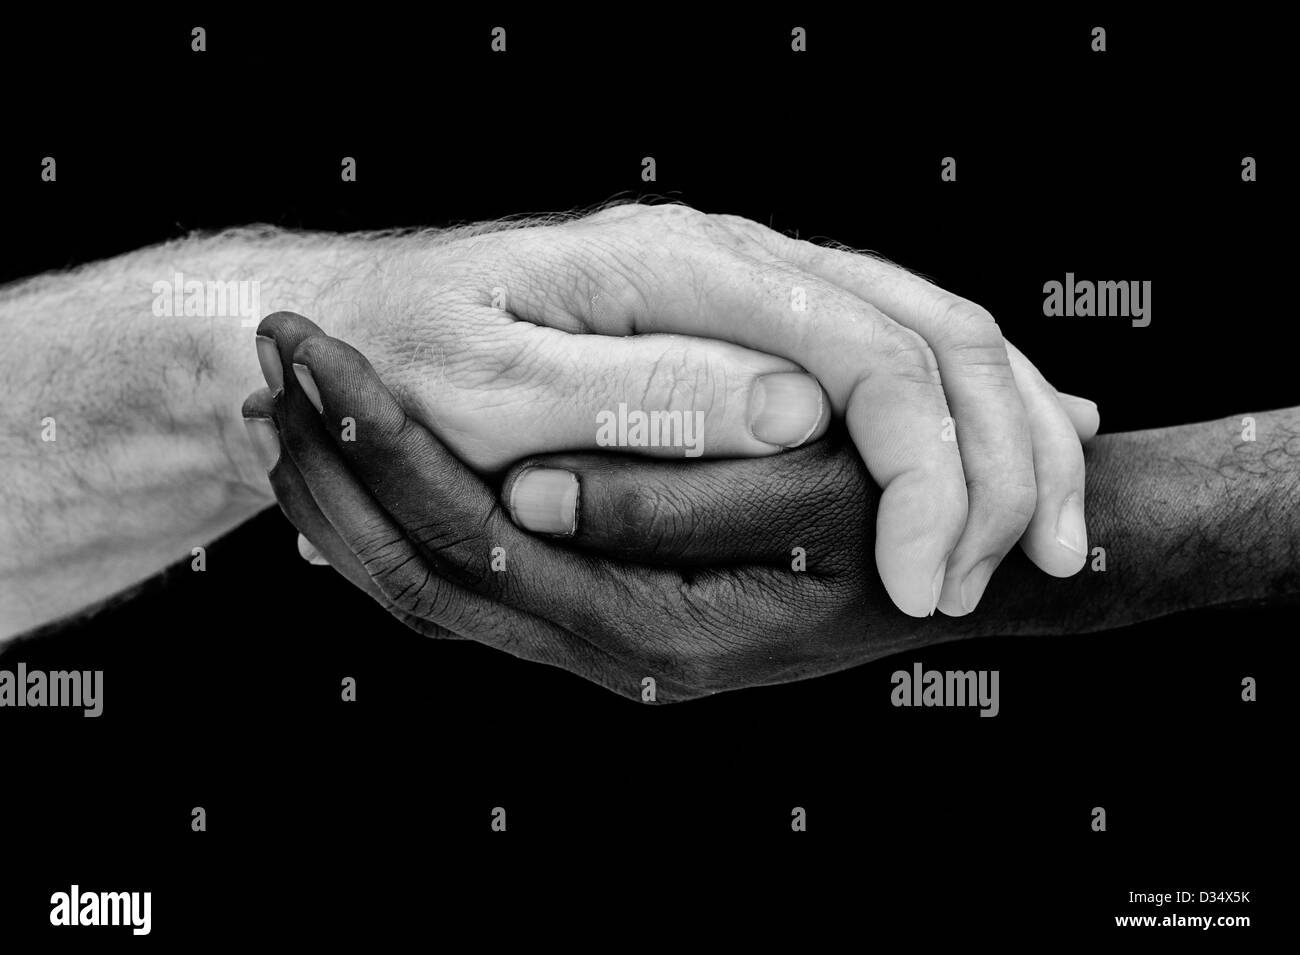 indian and englsih hands. Western and Eastern hands. Black and white. One humanity concept Stock Photo